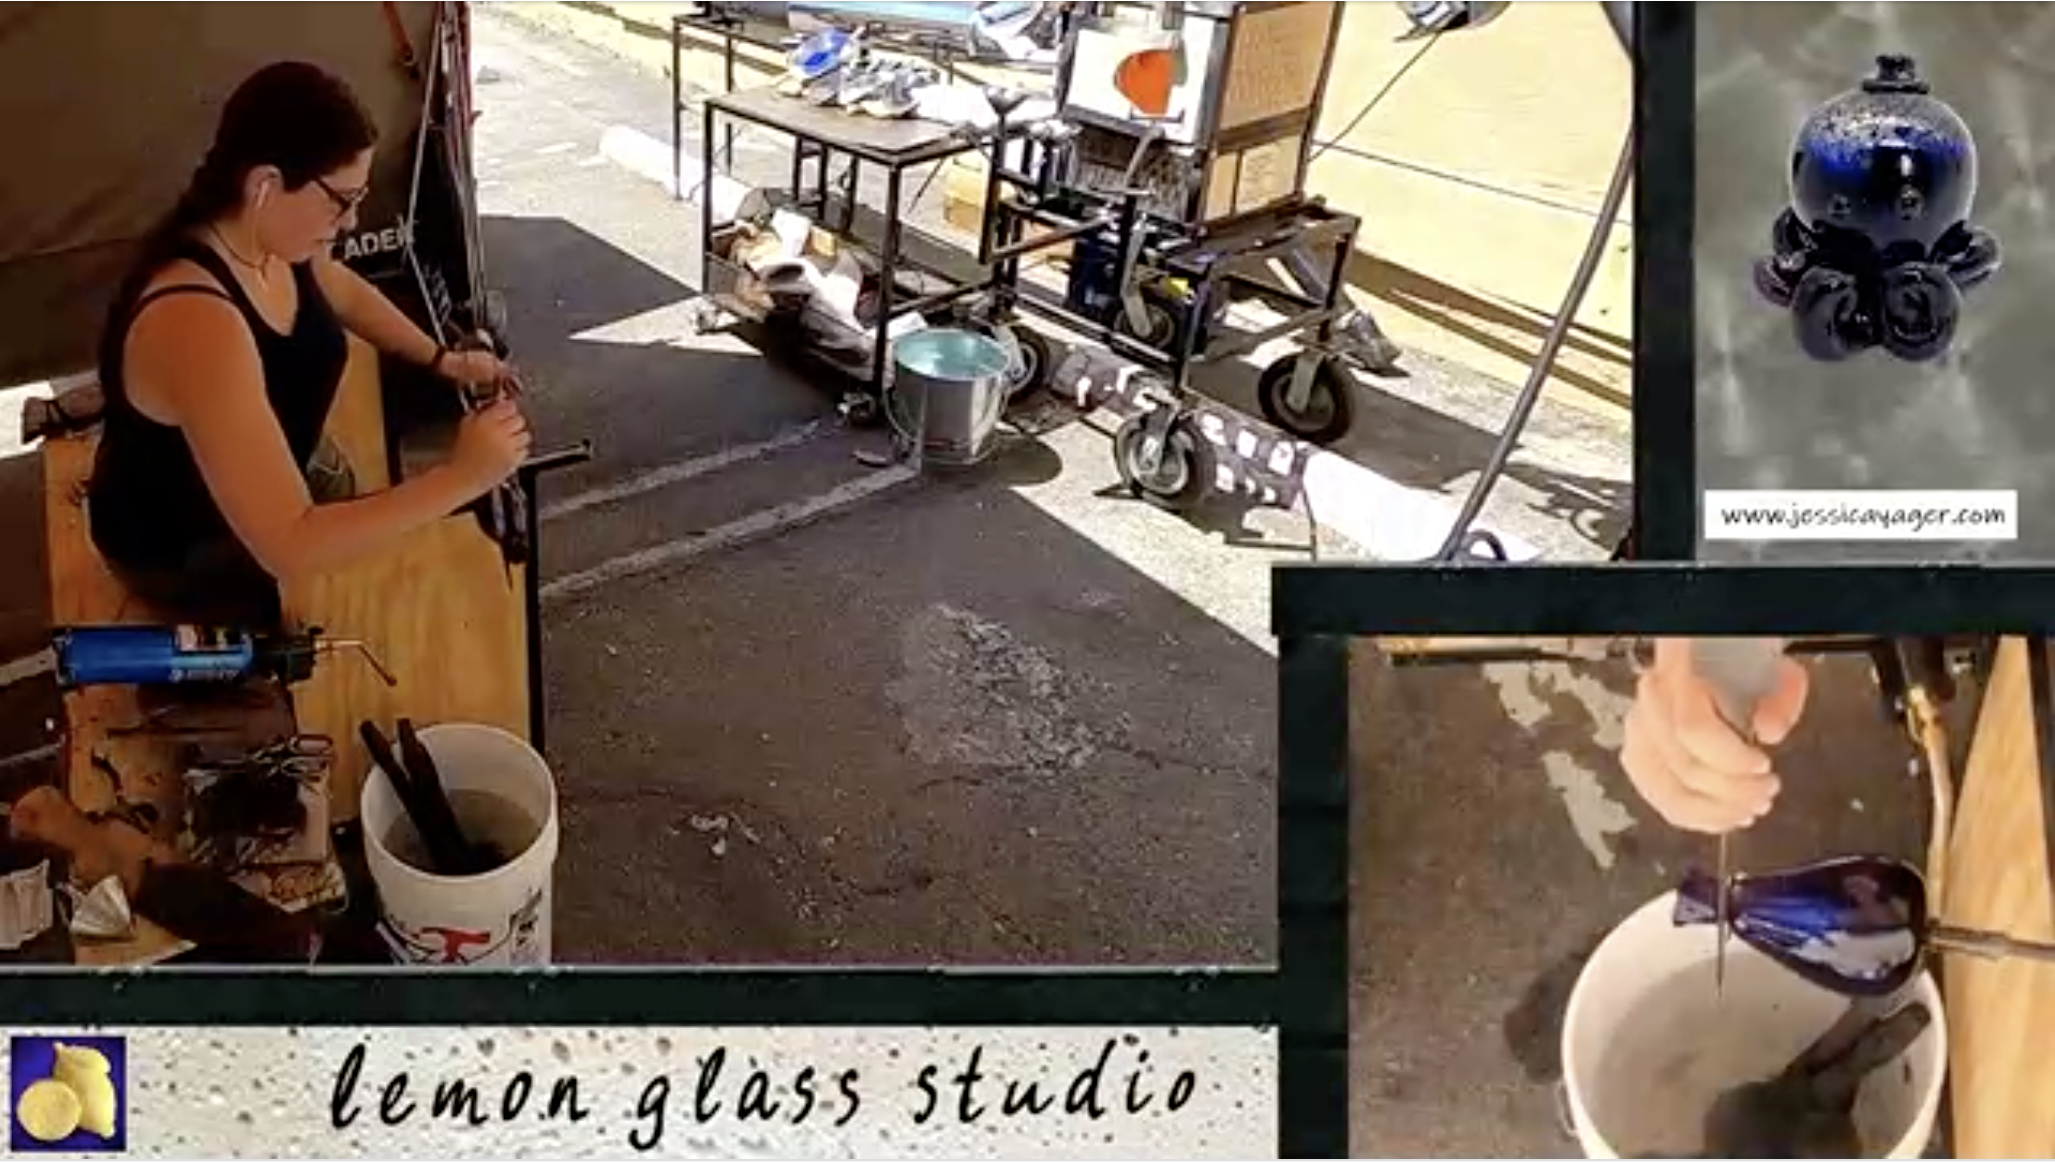 Sample image of a twitch stream, there are two camera angles showing a woman making a hand blown cobalt blue glass. One camera focuses on her hands, while she uses the jacks to create a constriction where she will make a clean break to define the lip of the cup. Also in frame is a small purple glass octopus in a top hat, and Lemon Glass Studio Logo